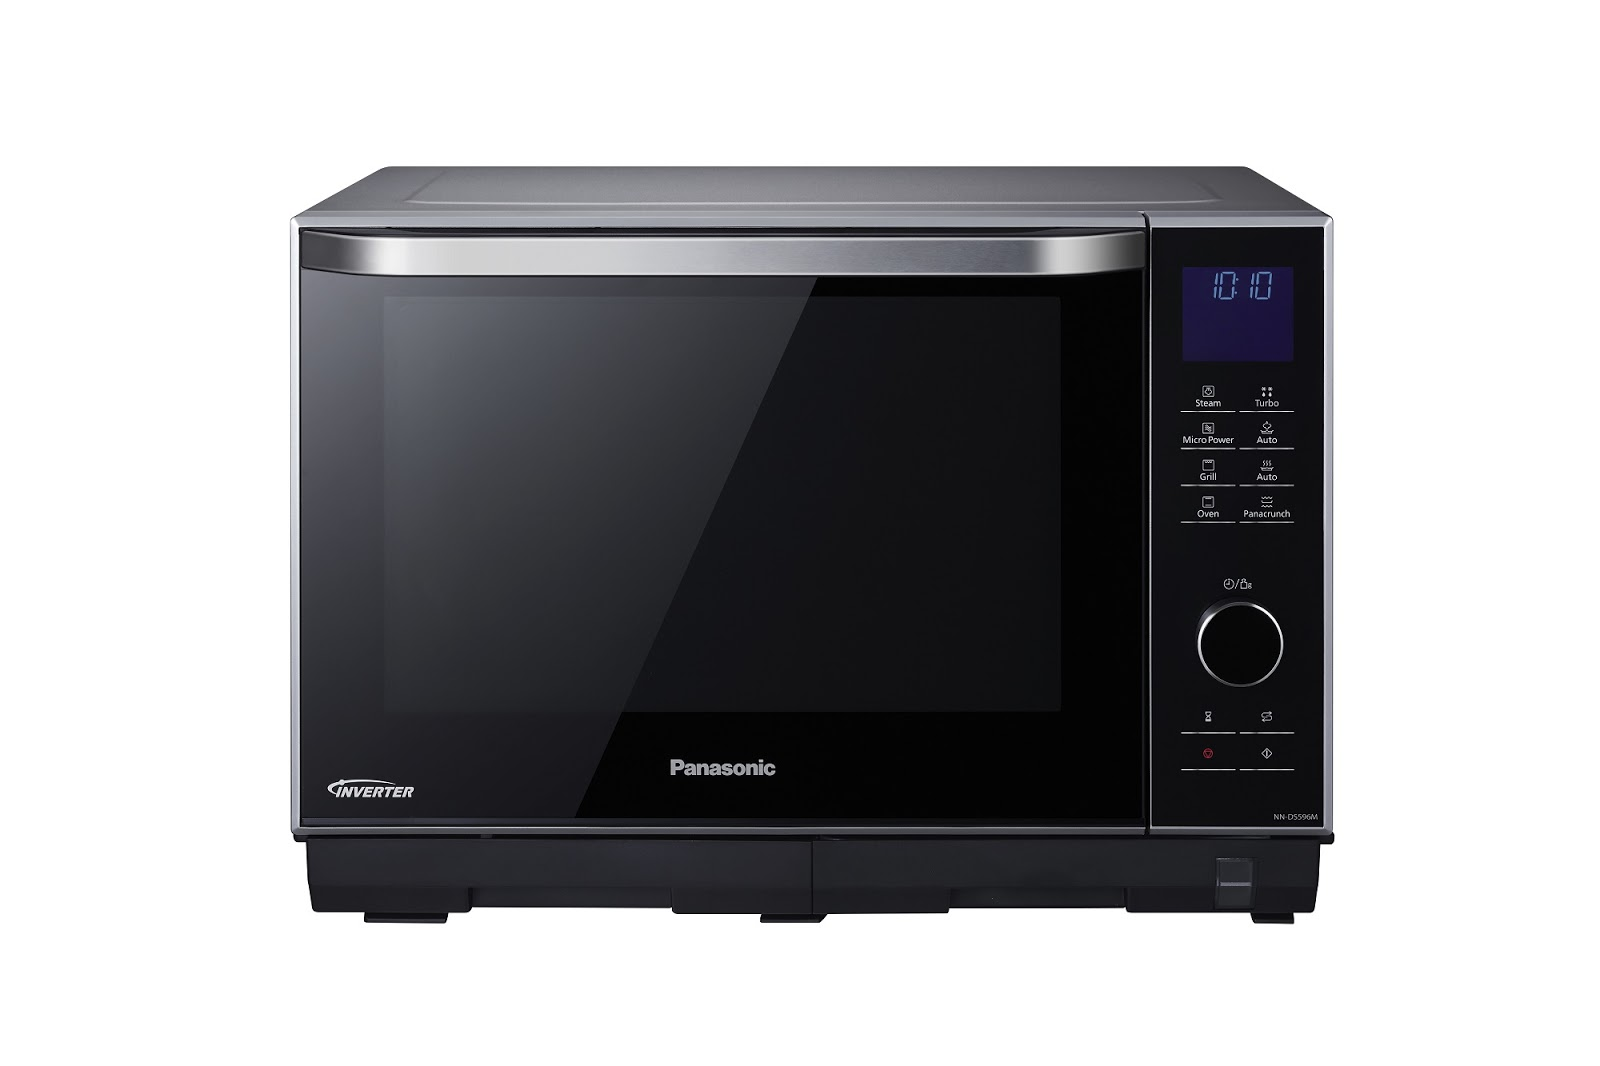 The Panasonic NNDS596M is our pick for best microwave Australia